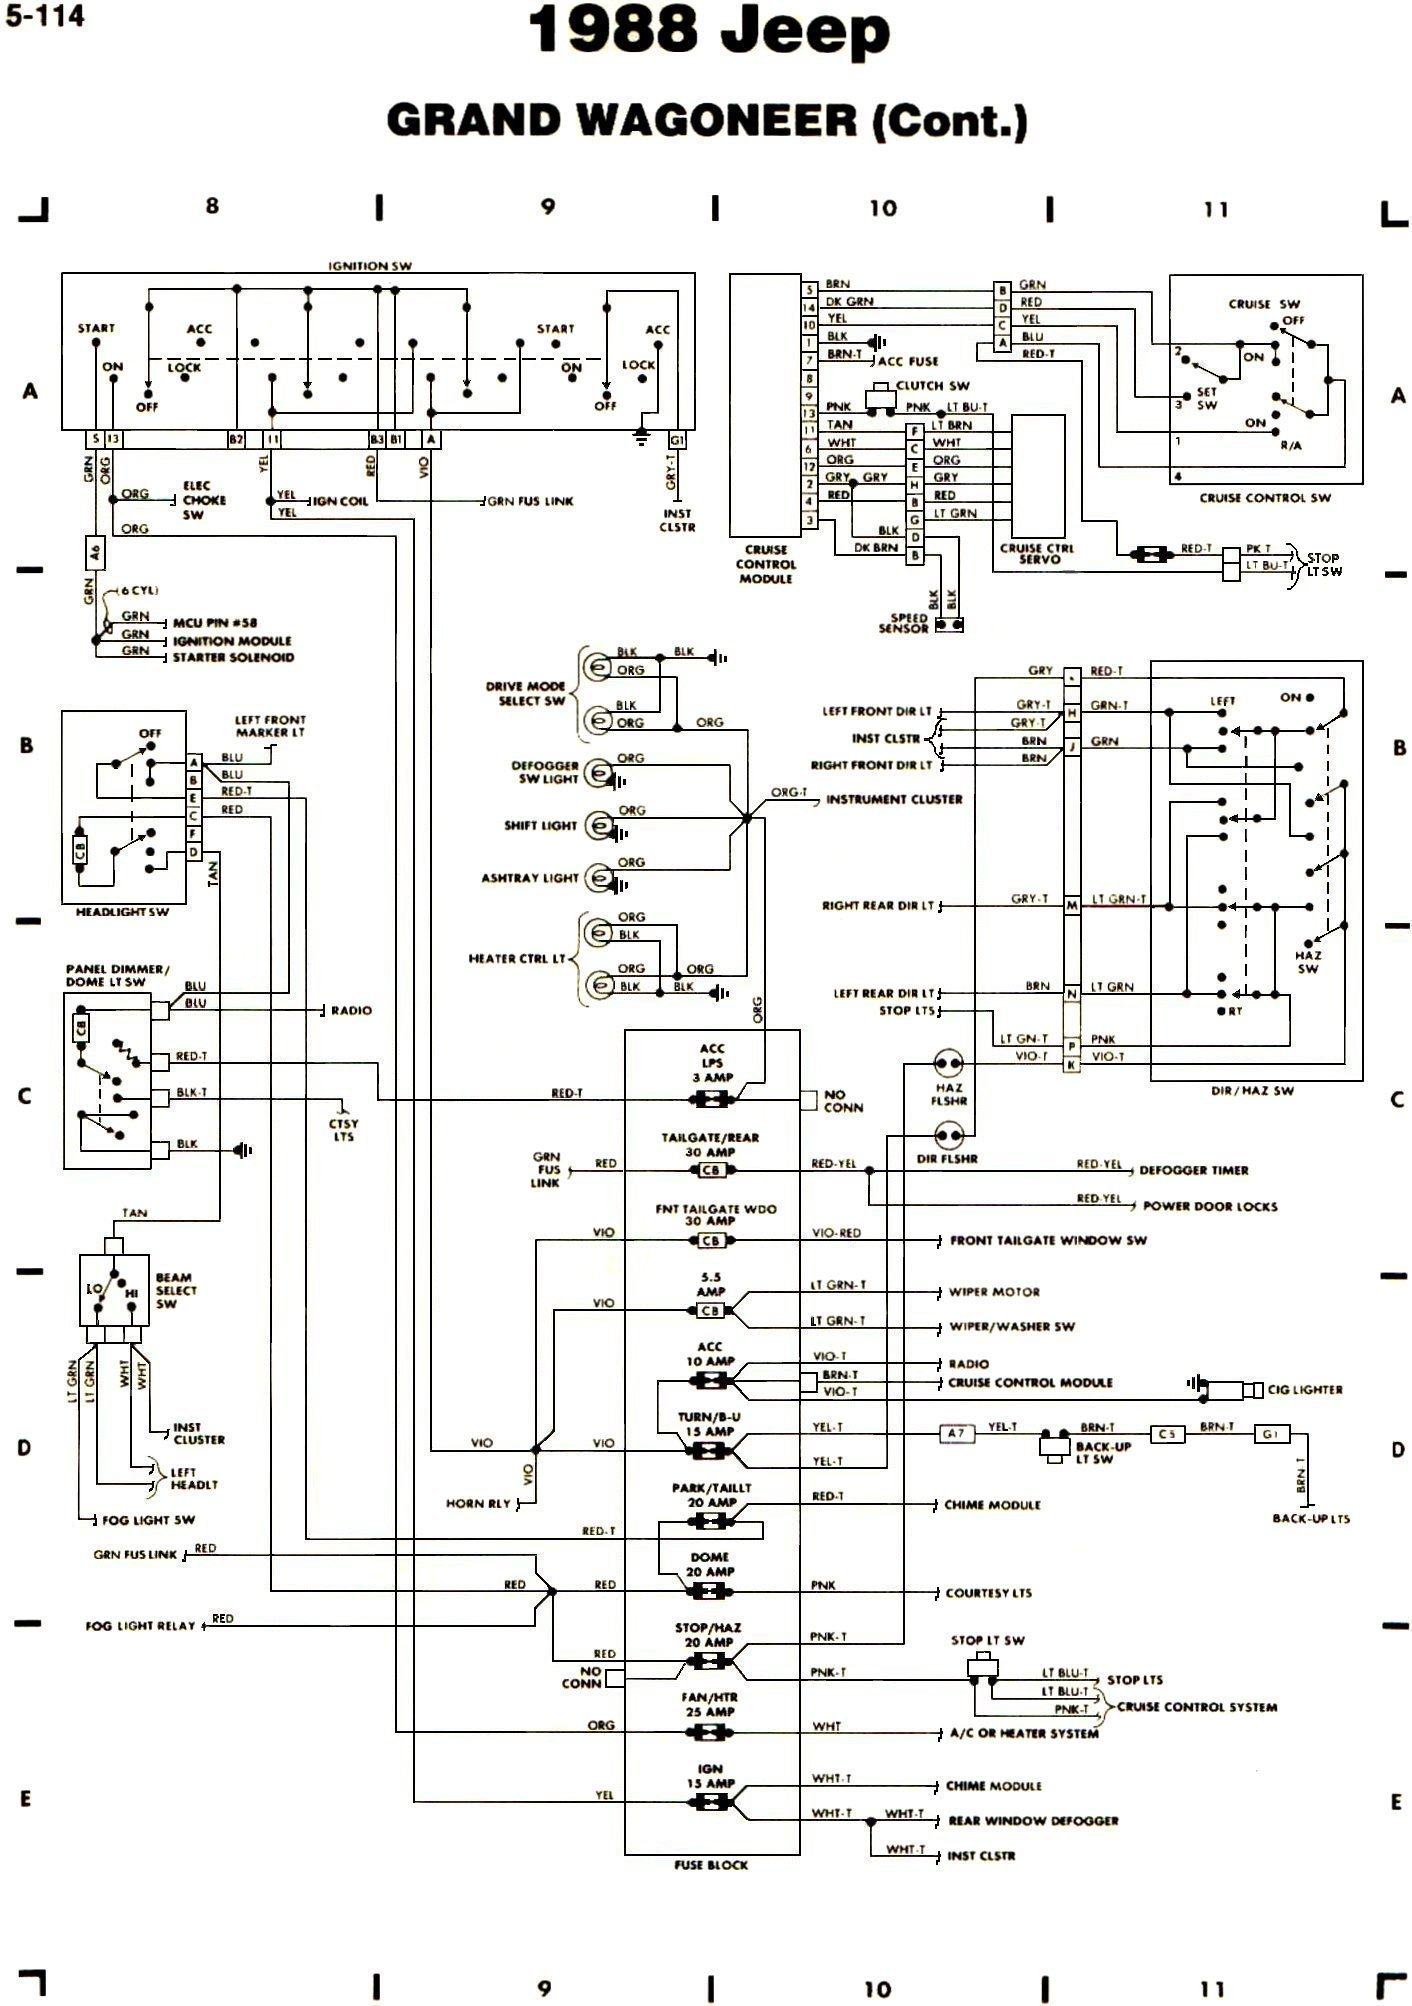 freightliner wiring fuse box diagram jRoIVIr?resize=665%2C945 diagrams 1280800 freightliner columbia wiring diagram i have a 2007 Freightliner Wiring Diagram at n-0.co